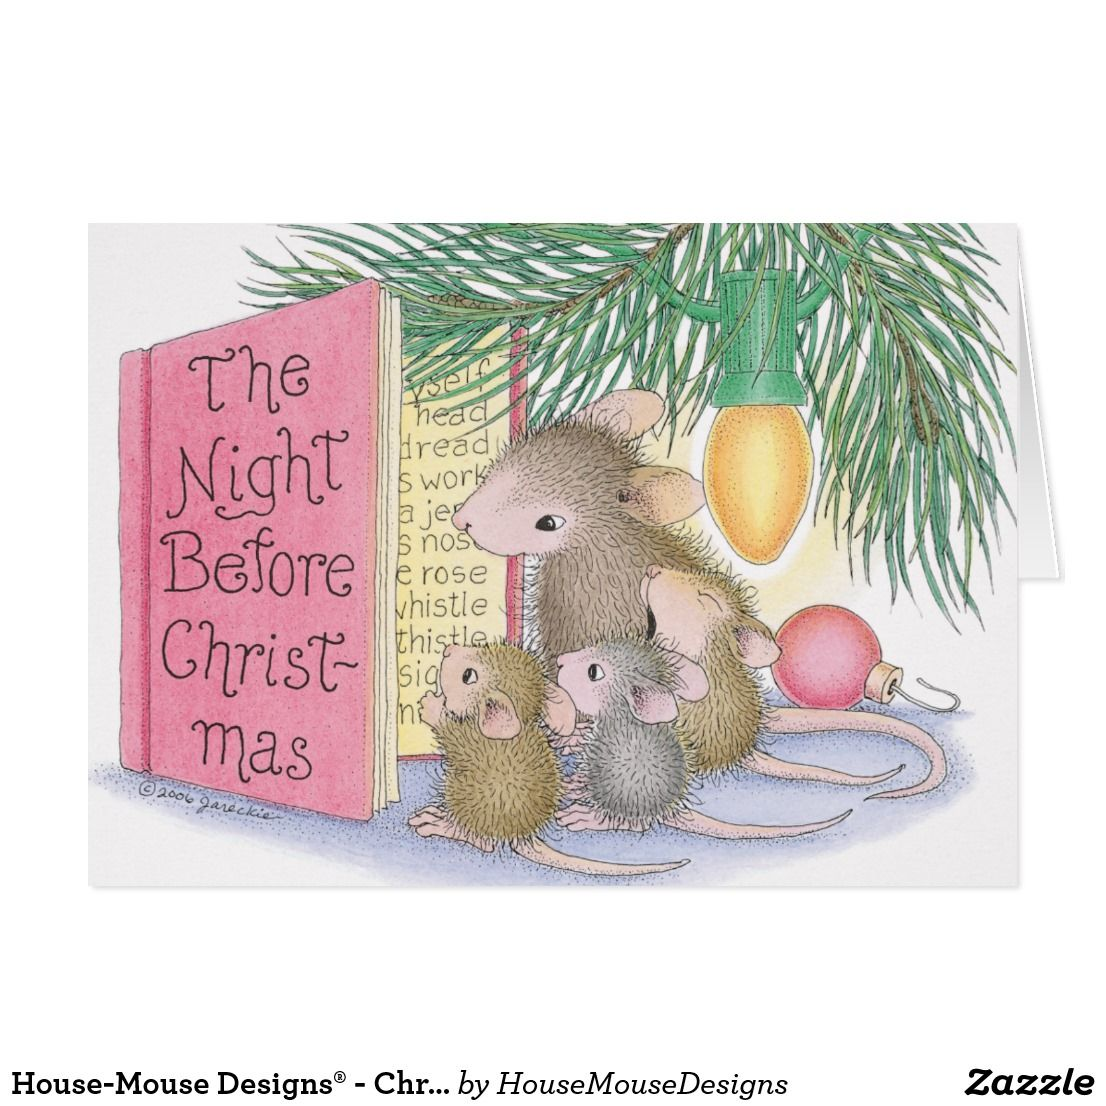 House-Mouse Designs® - Christmas Cards | holidays | Pinterest ...